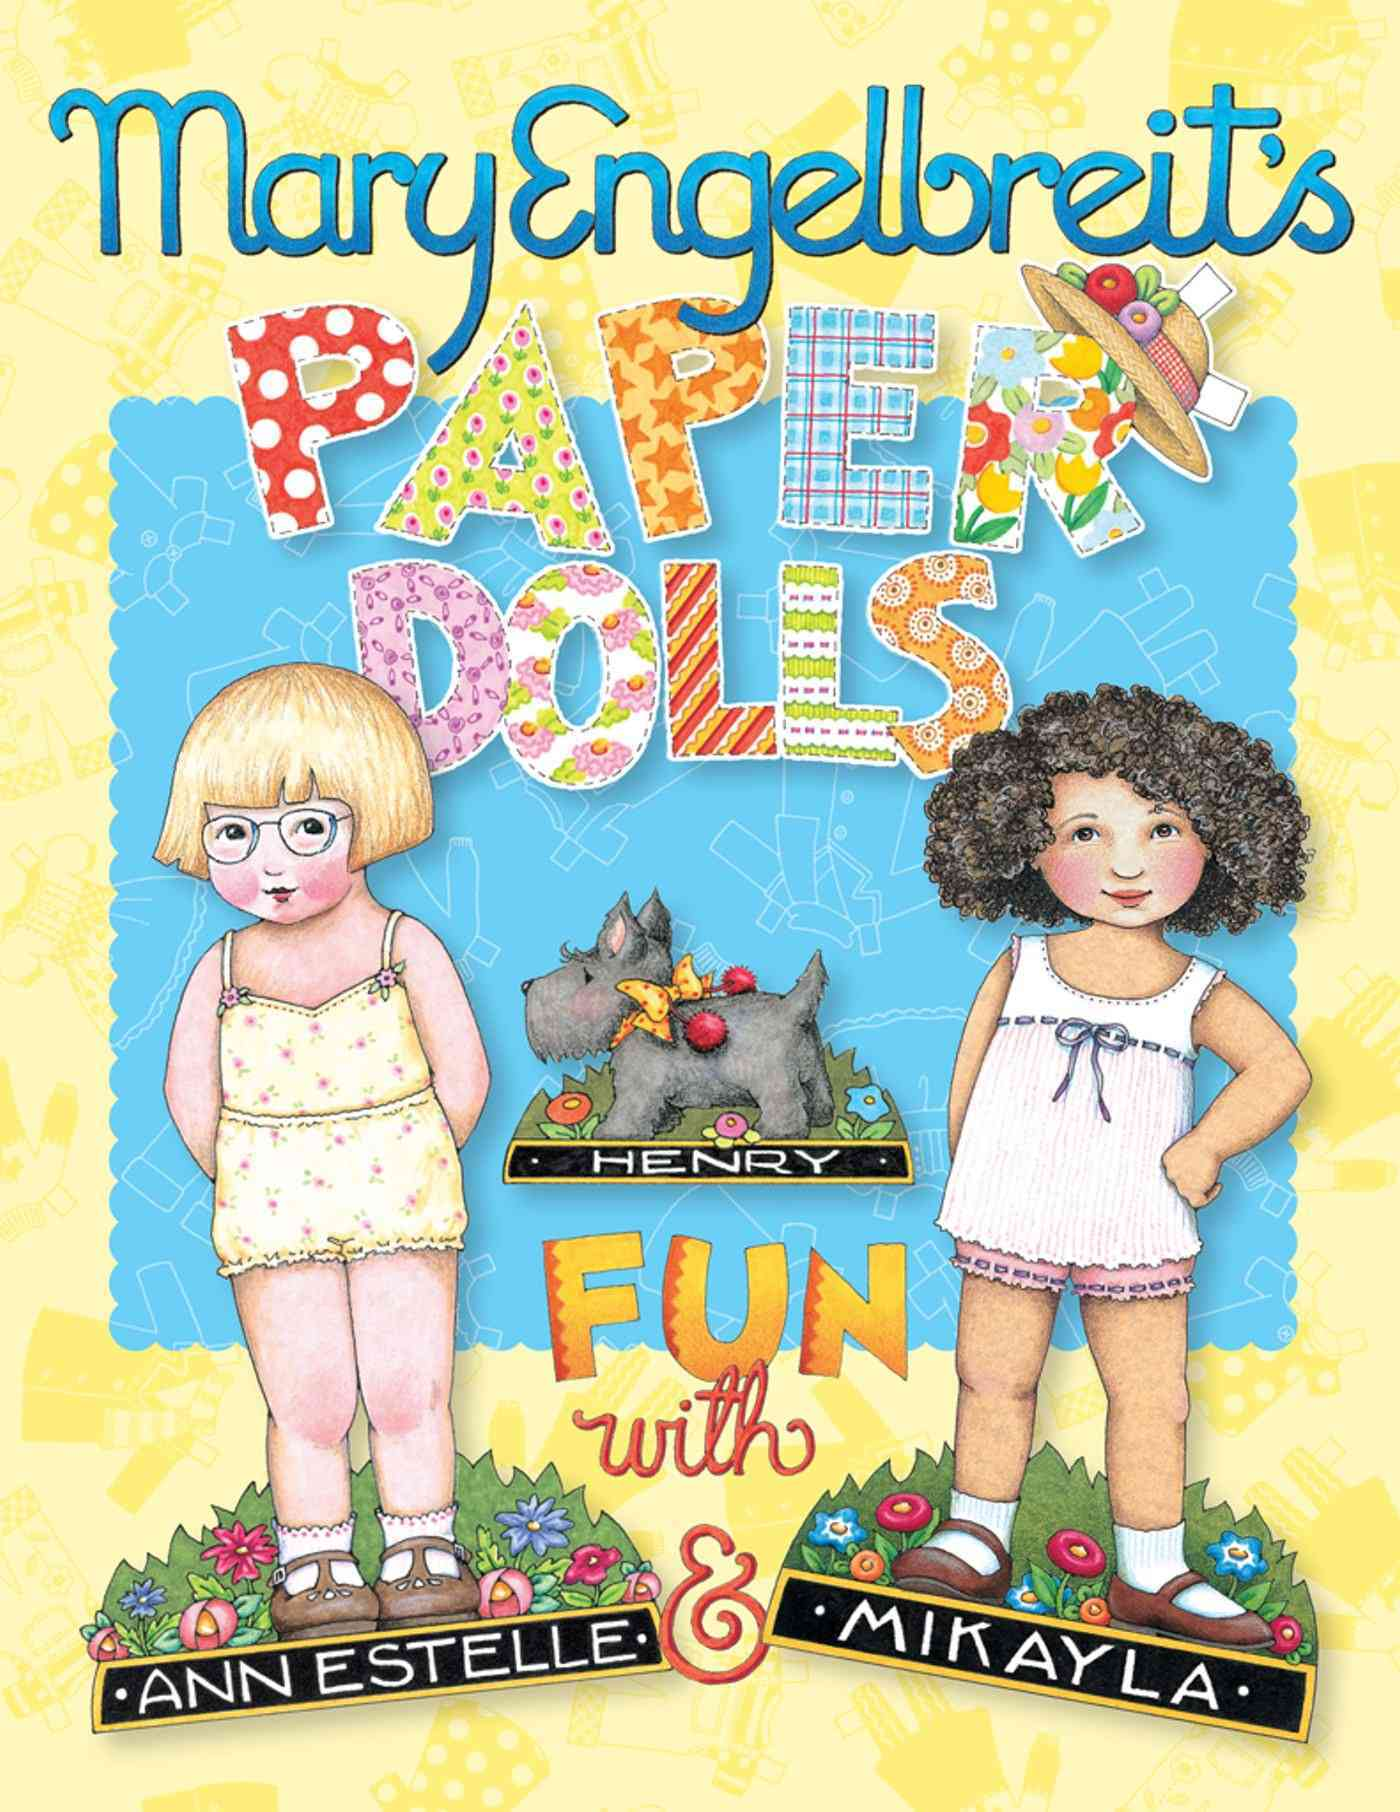 Mary Engelbreit's Paper Dolls: Fun With Ann Estelle and Mikayla (Paperback)